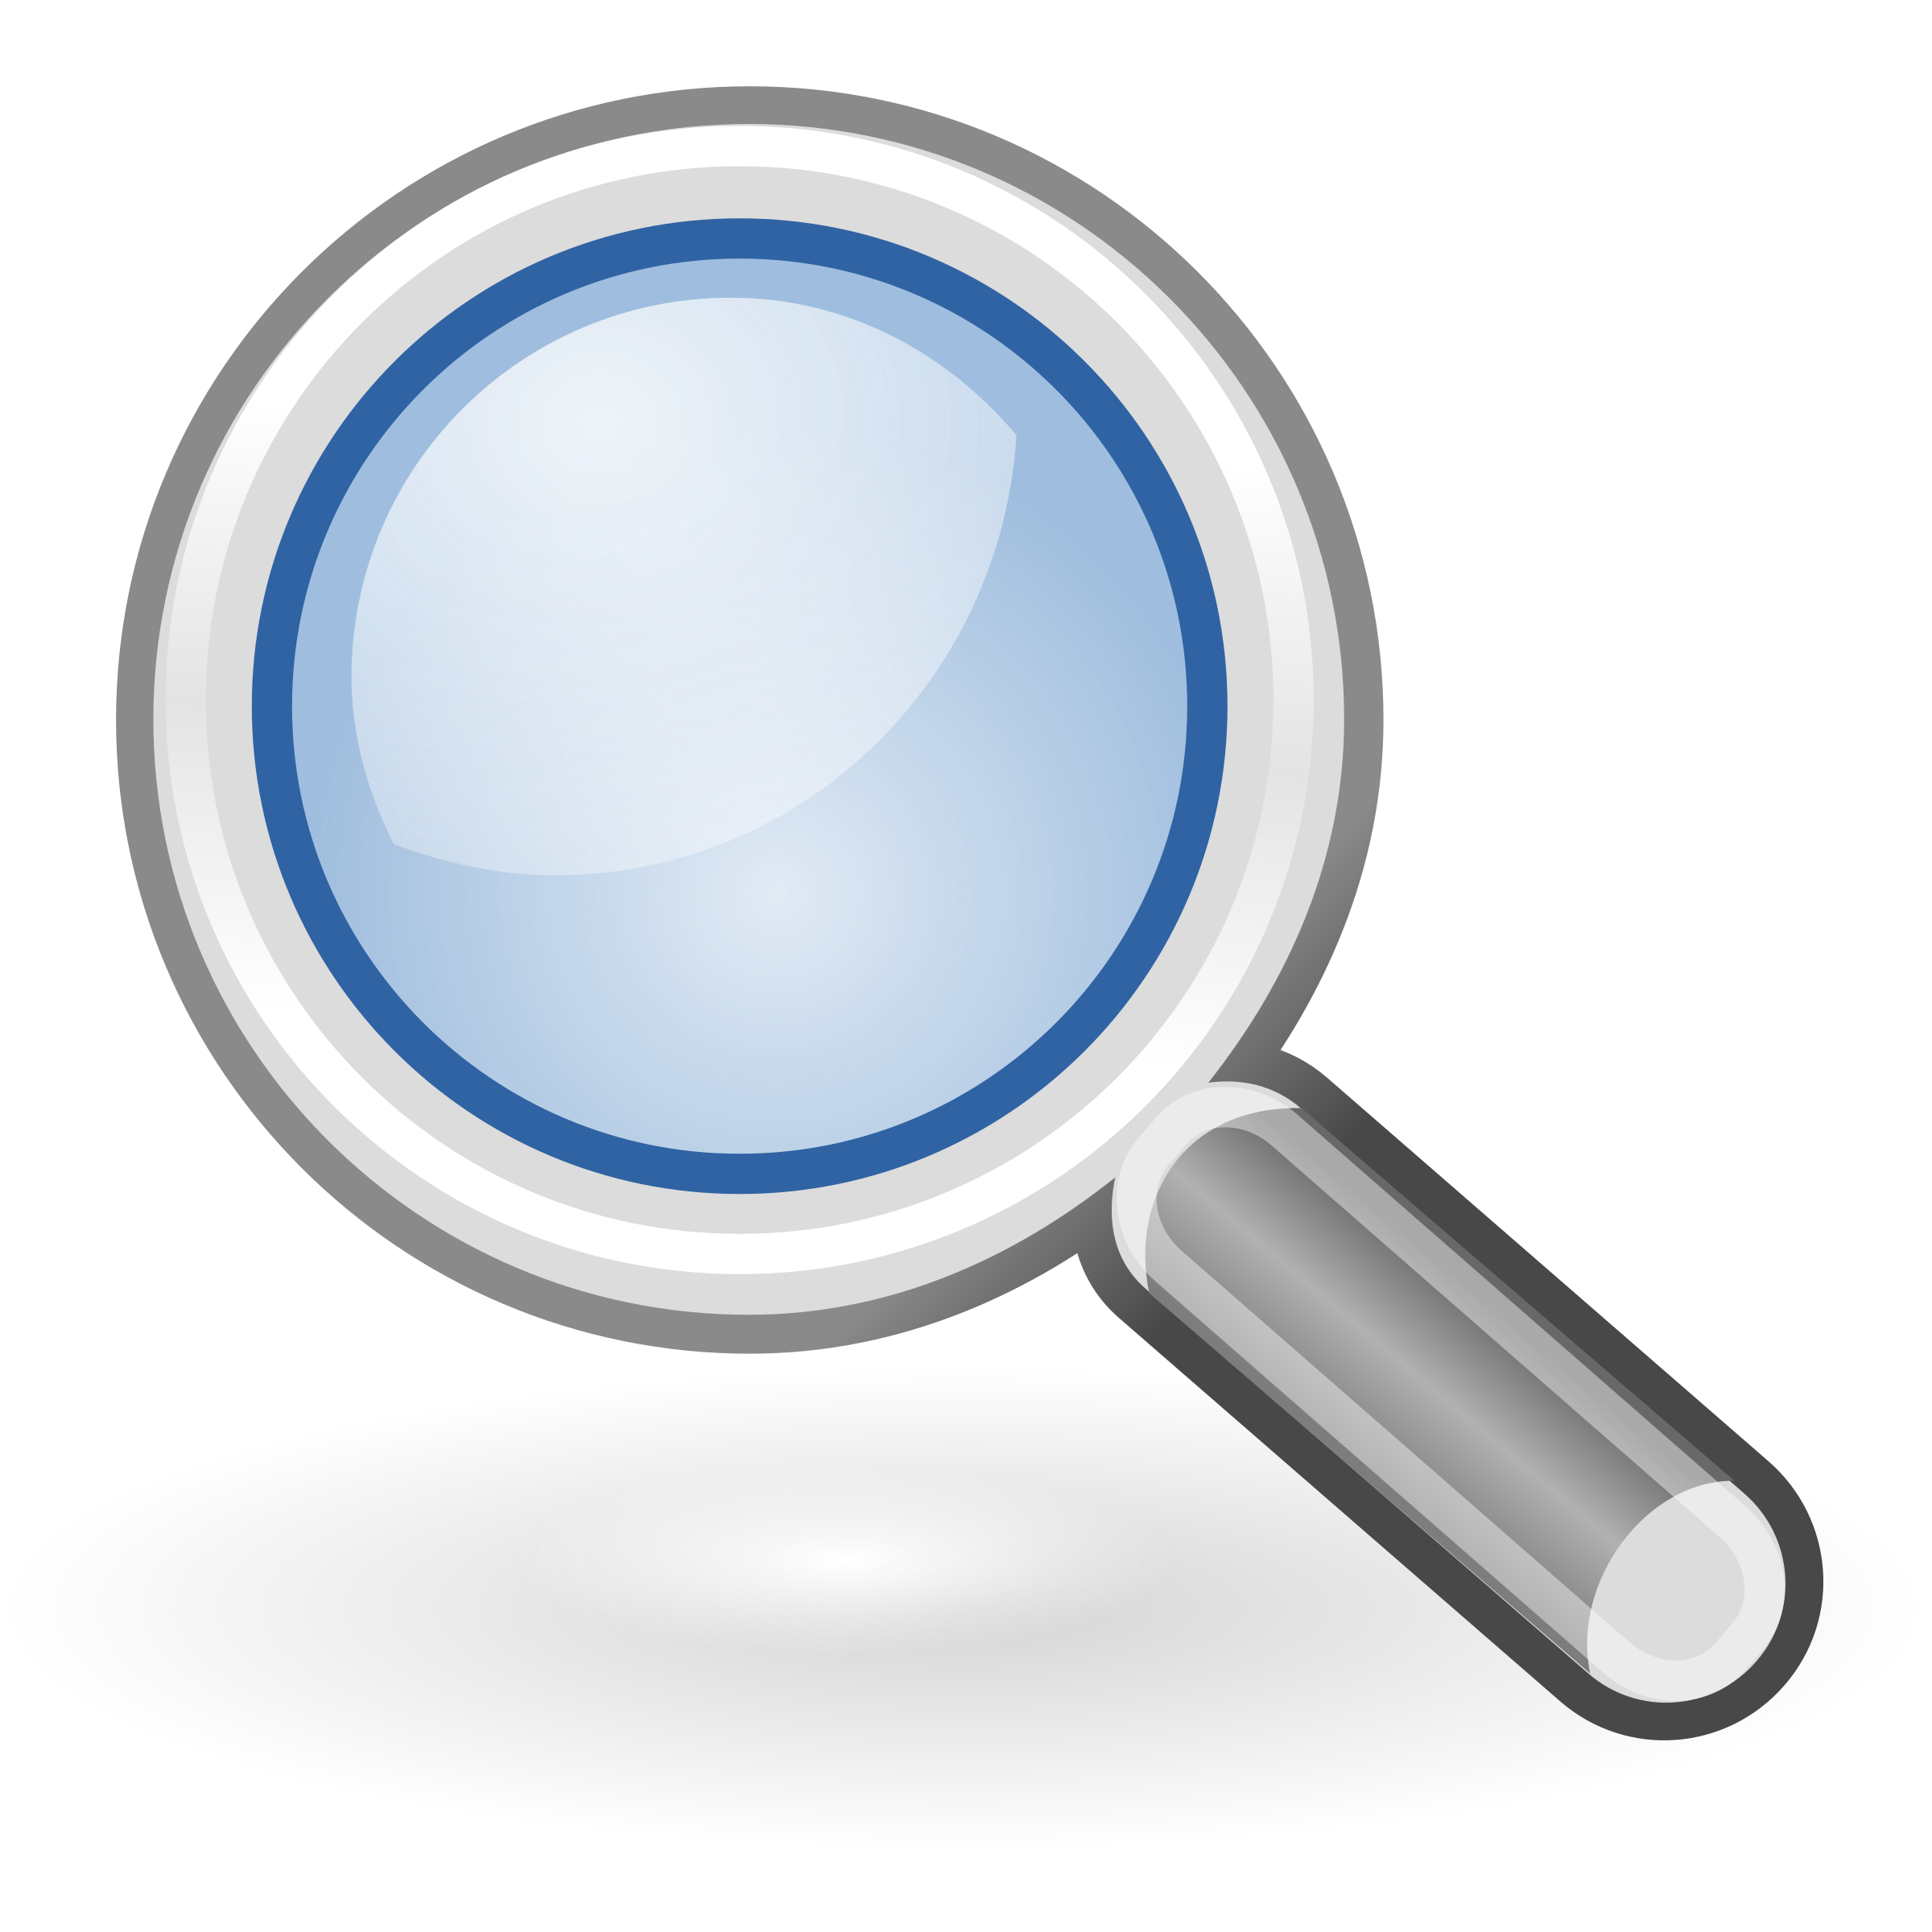 Magnifying glass and book clipart png royalty free Creative commons clipart search - ClipartFest png royalty free